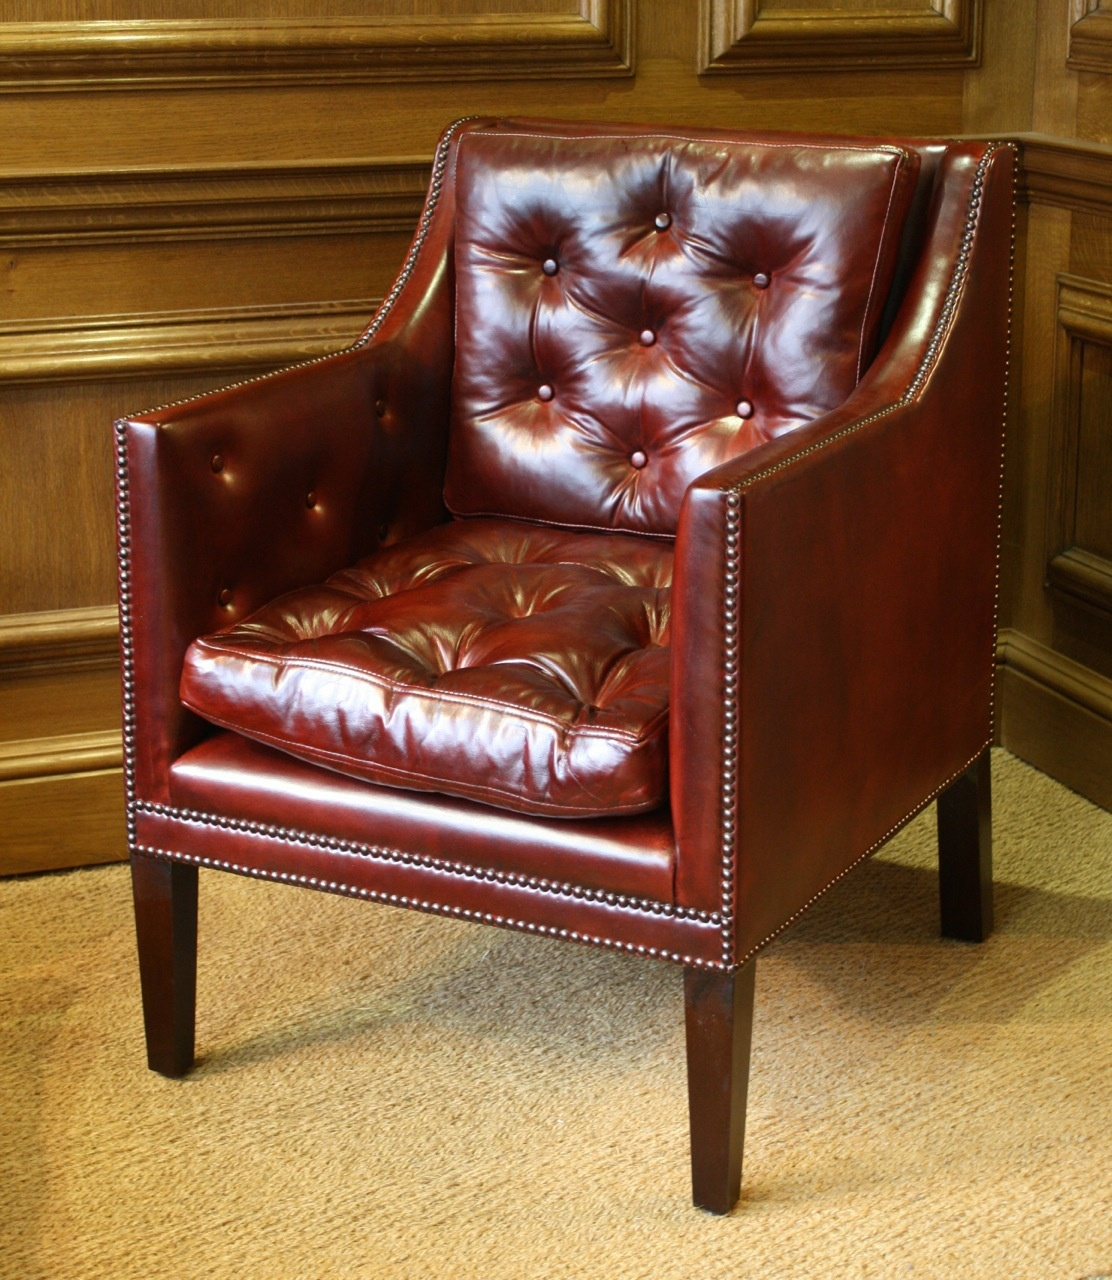 leather chairs of bath ergonomic chair in mauritius admiral horatio lord nelson hms victory